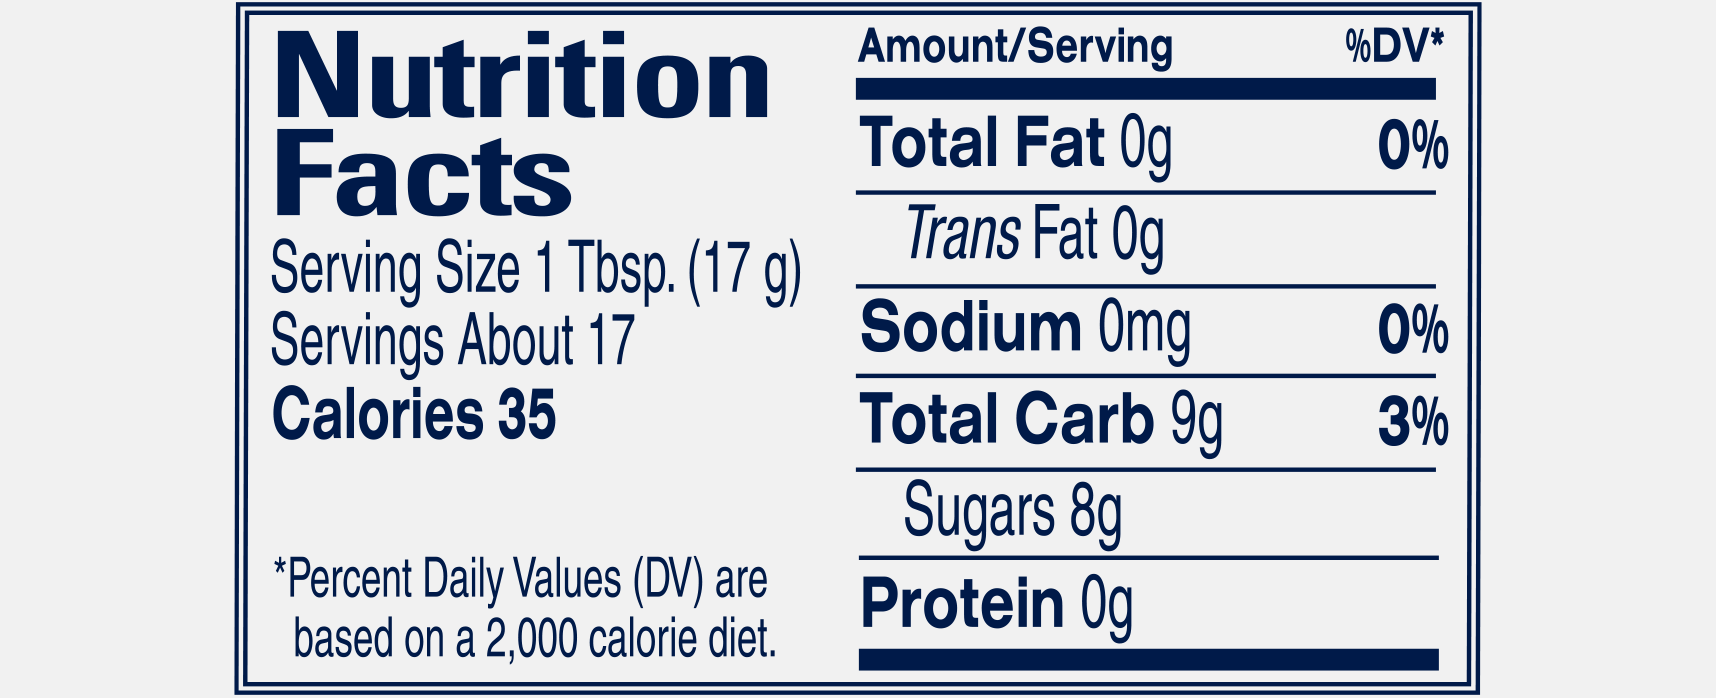 StDalfour_NutritionFacts_CranberryBlueberry.png